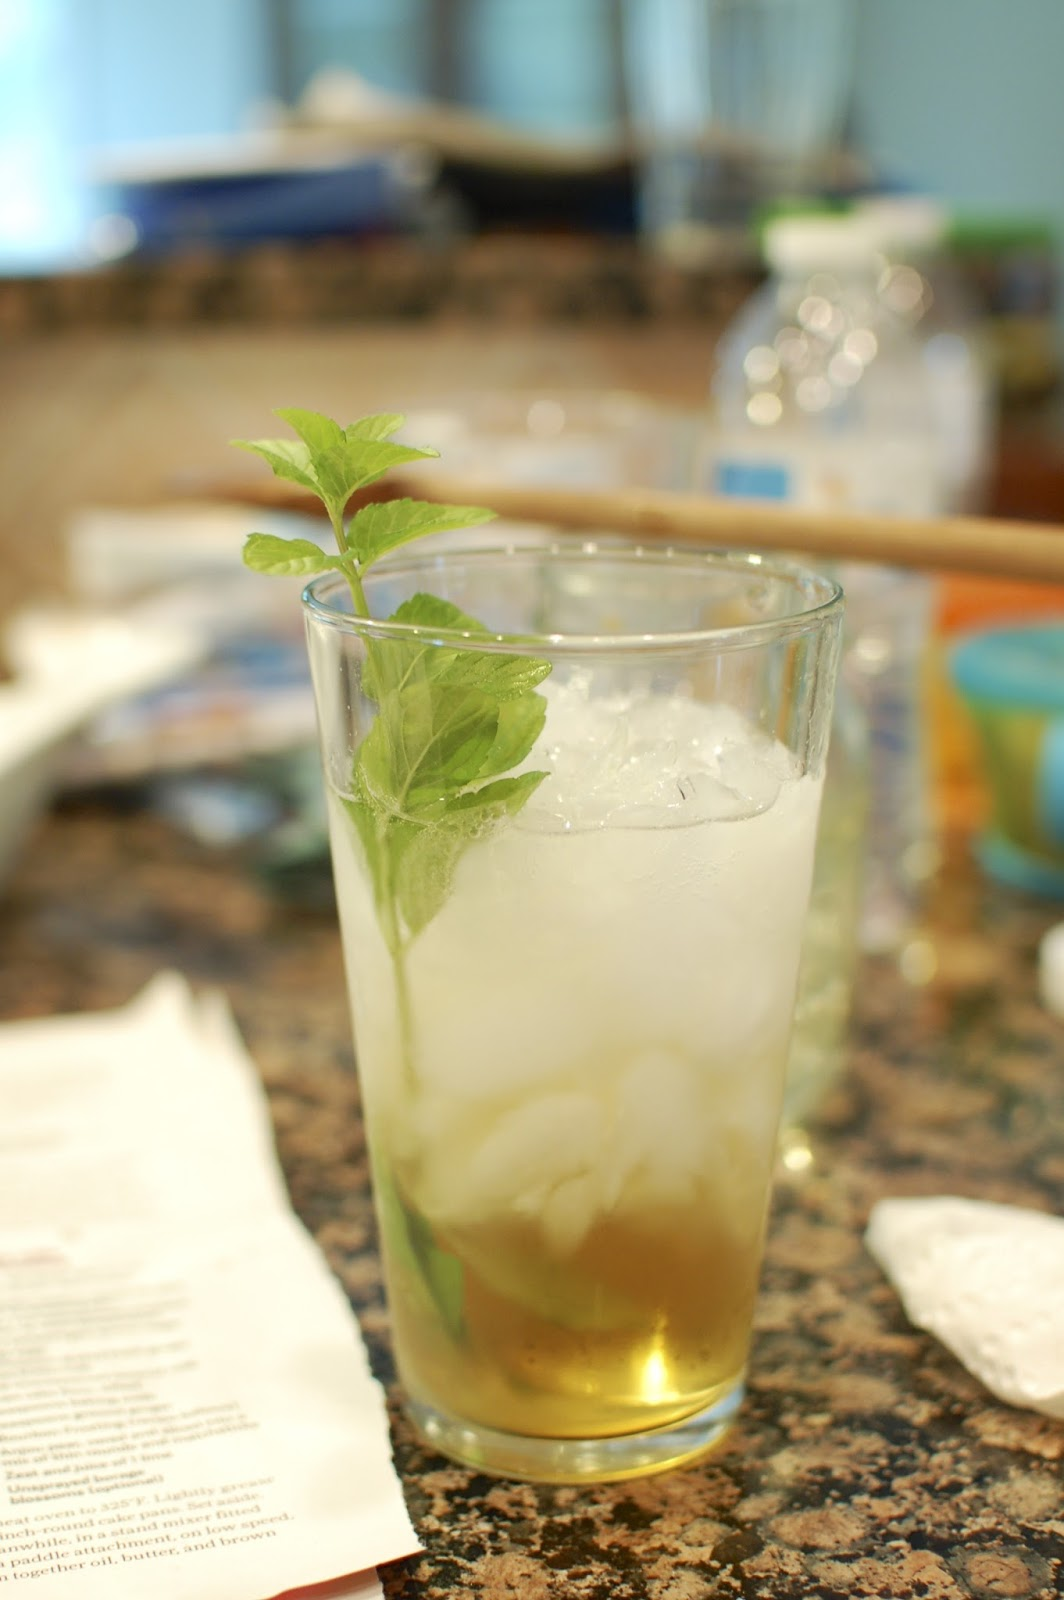 Jalapeno Simple Syrup For Jalapeno Mint Juleps Lb S Good Spoon,Questions To Ask When Buying A House For Sale By Owner